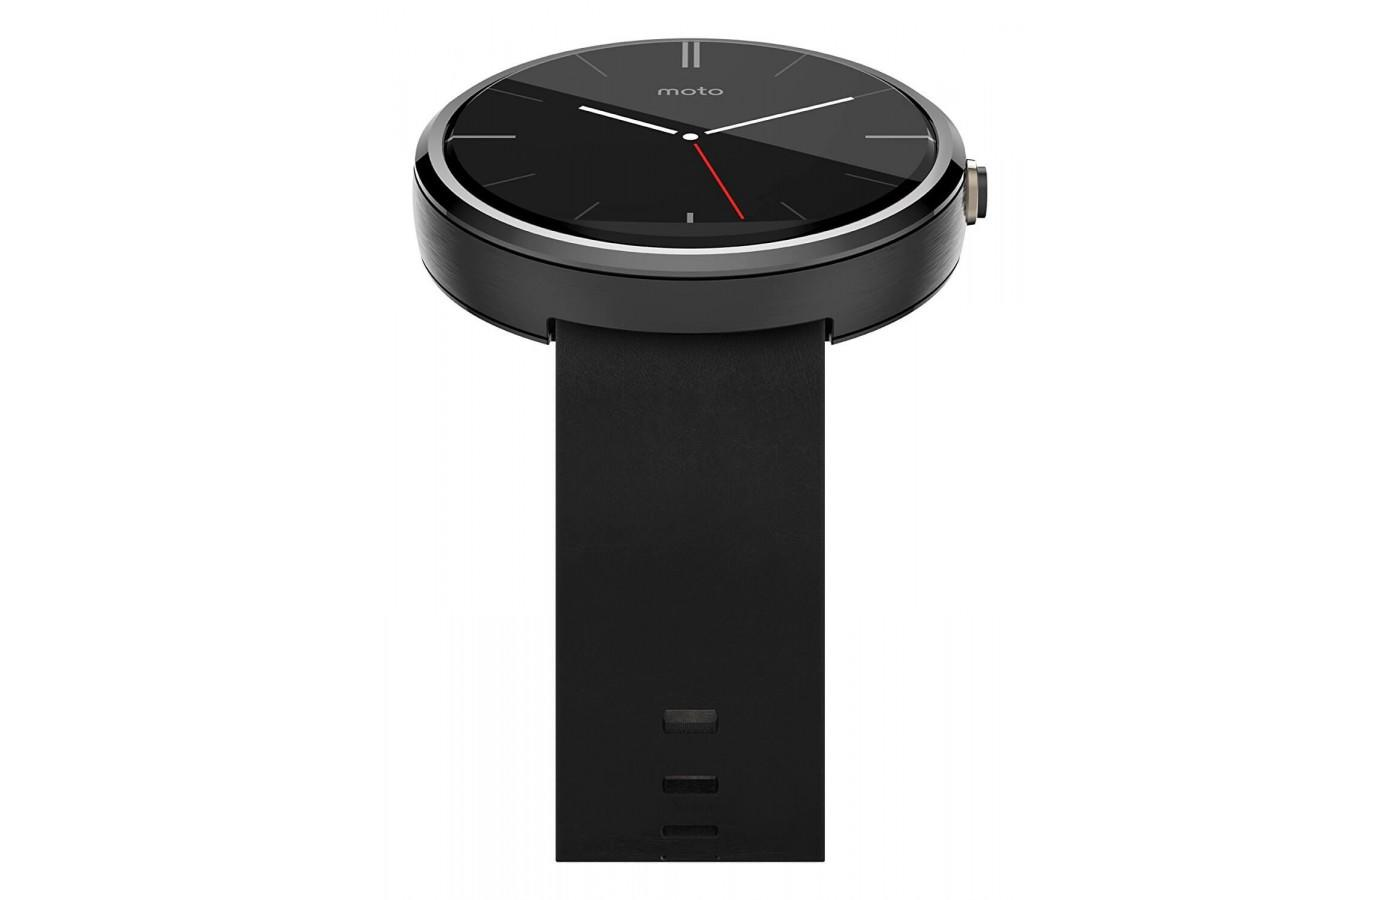 Motorola Moto 360 (1st gen.) has a built in heart rate monitor